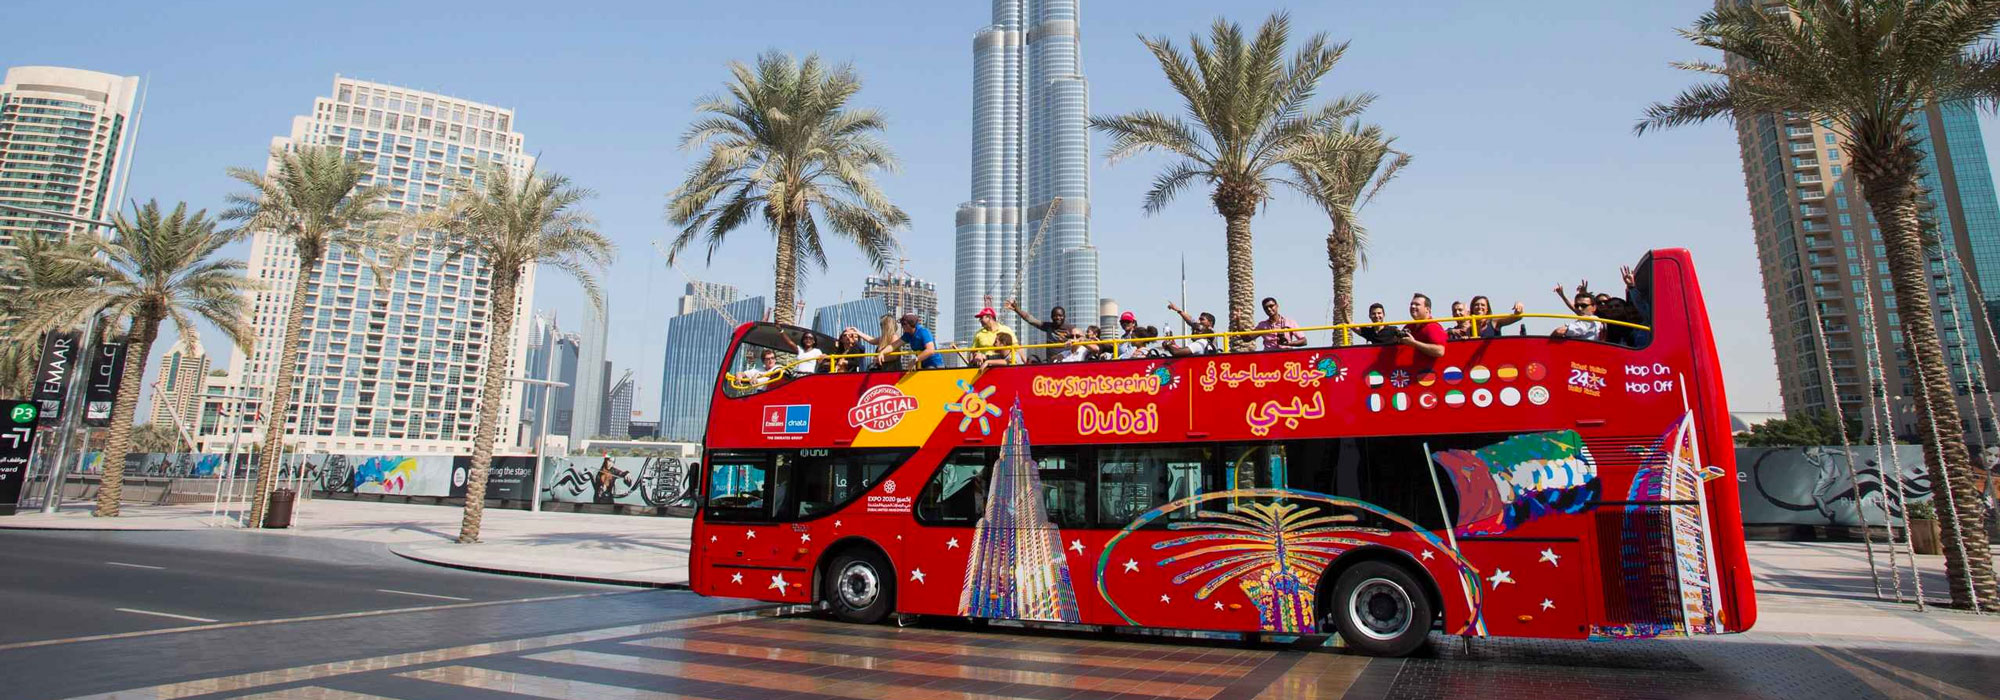 water bus service in Dubai